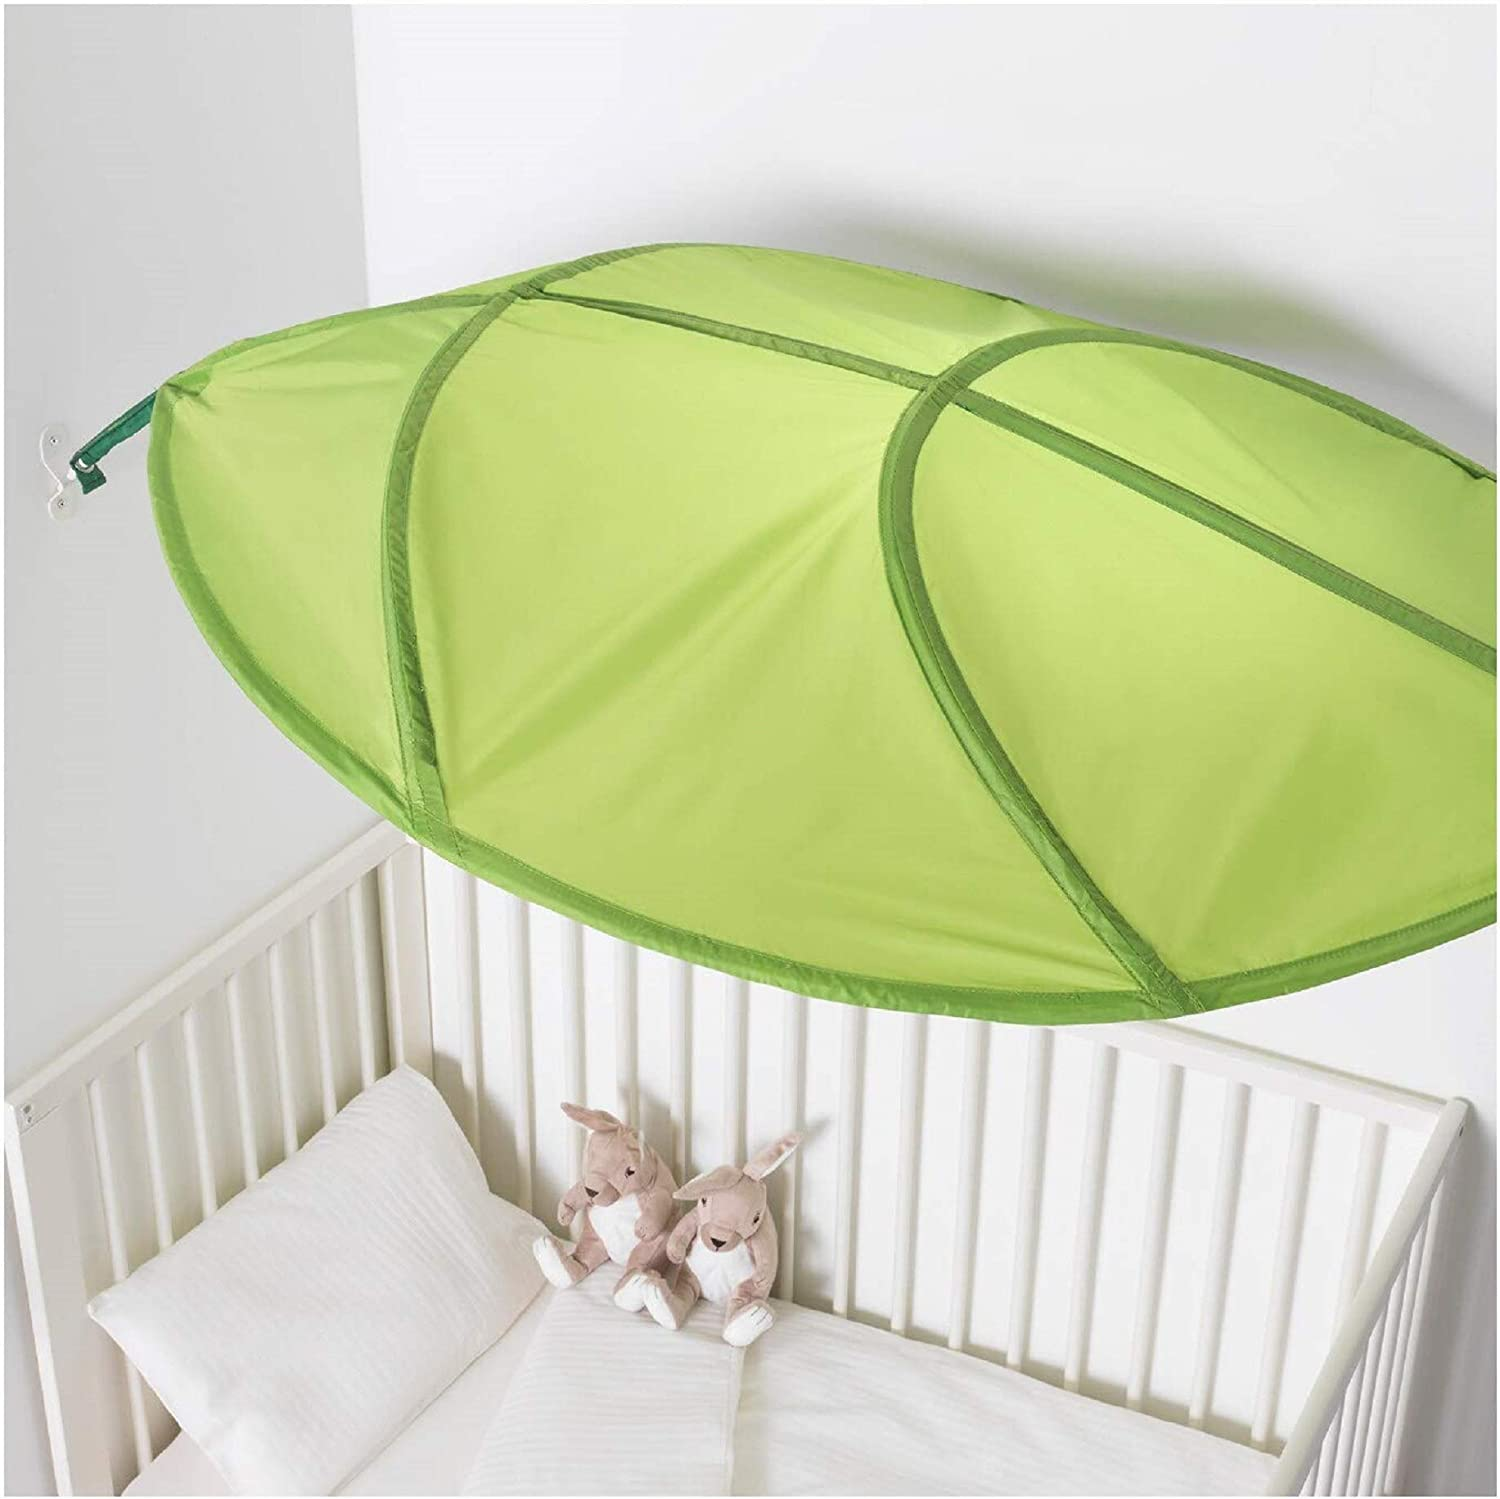 Ikea star lamp , bed canopy , mounted